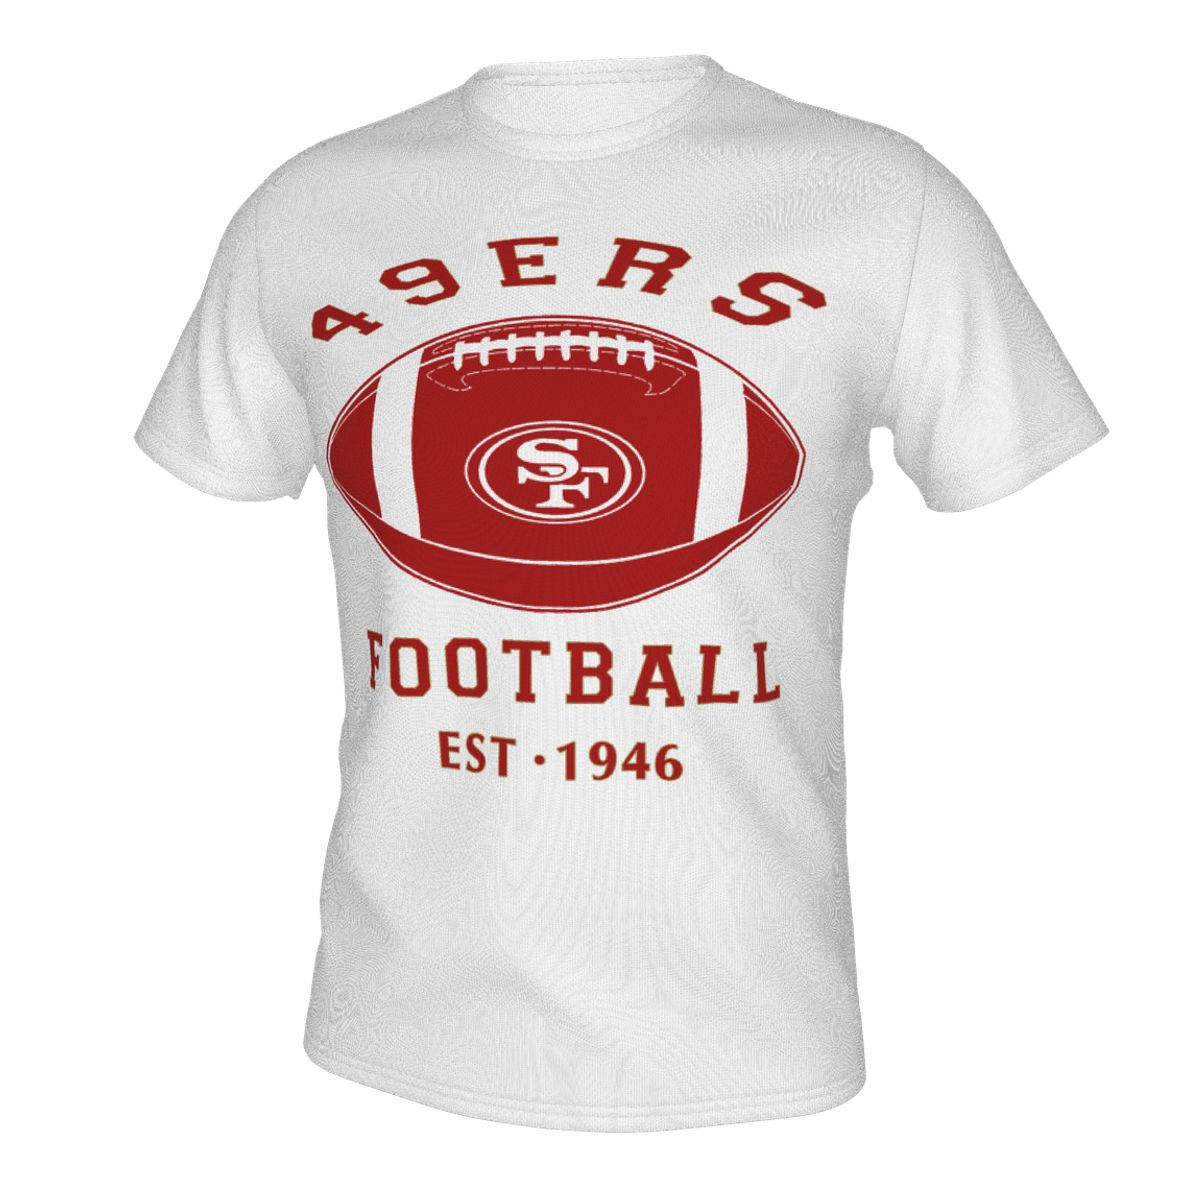 Footabll 49ers T-shirts For Men